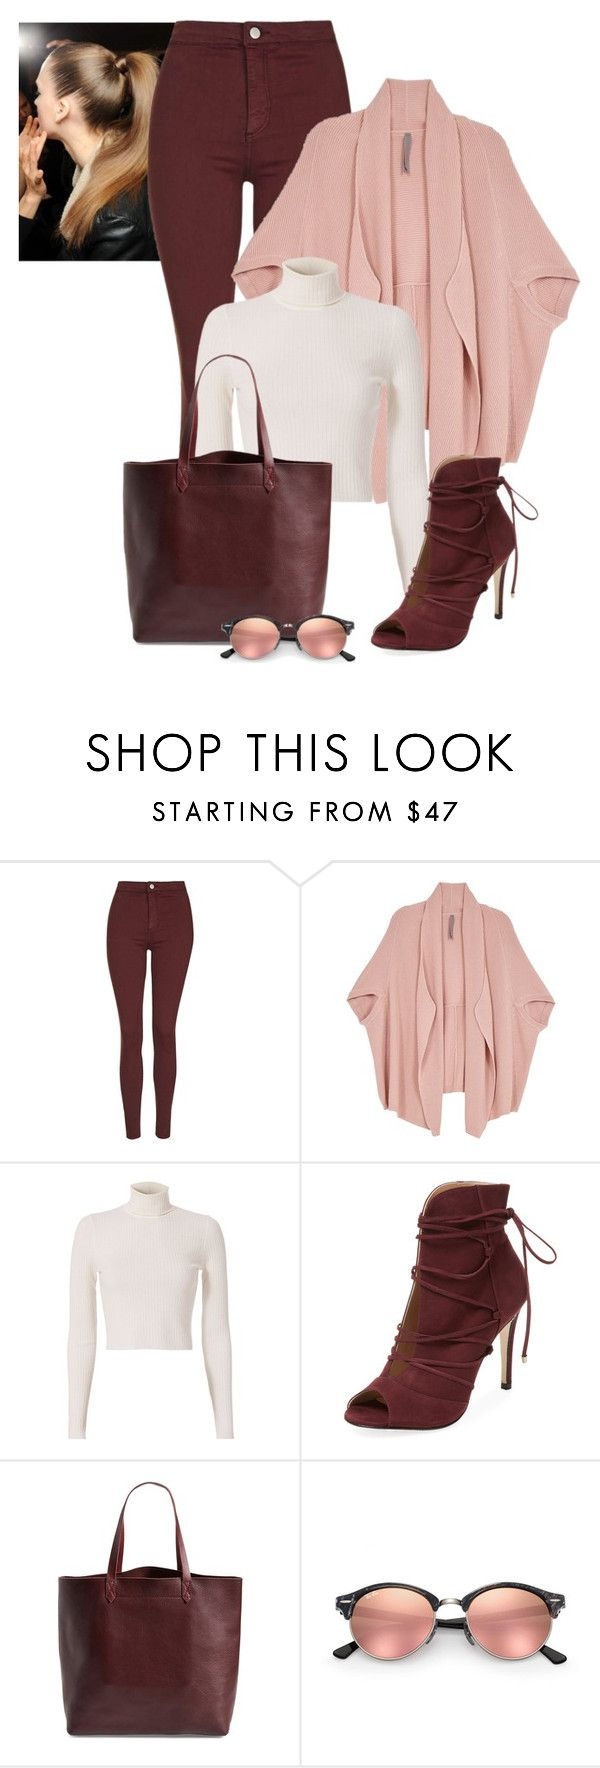 """2016/946"" by dimceandovski ❤ liked on Polyvore featuring Topshop, Melissa McCarthy Seven7, A.L.C., Elorie, Madewell, Ray-Ban and plus size clothing"